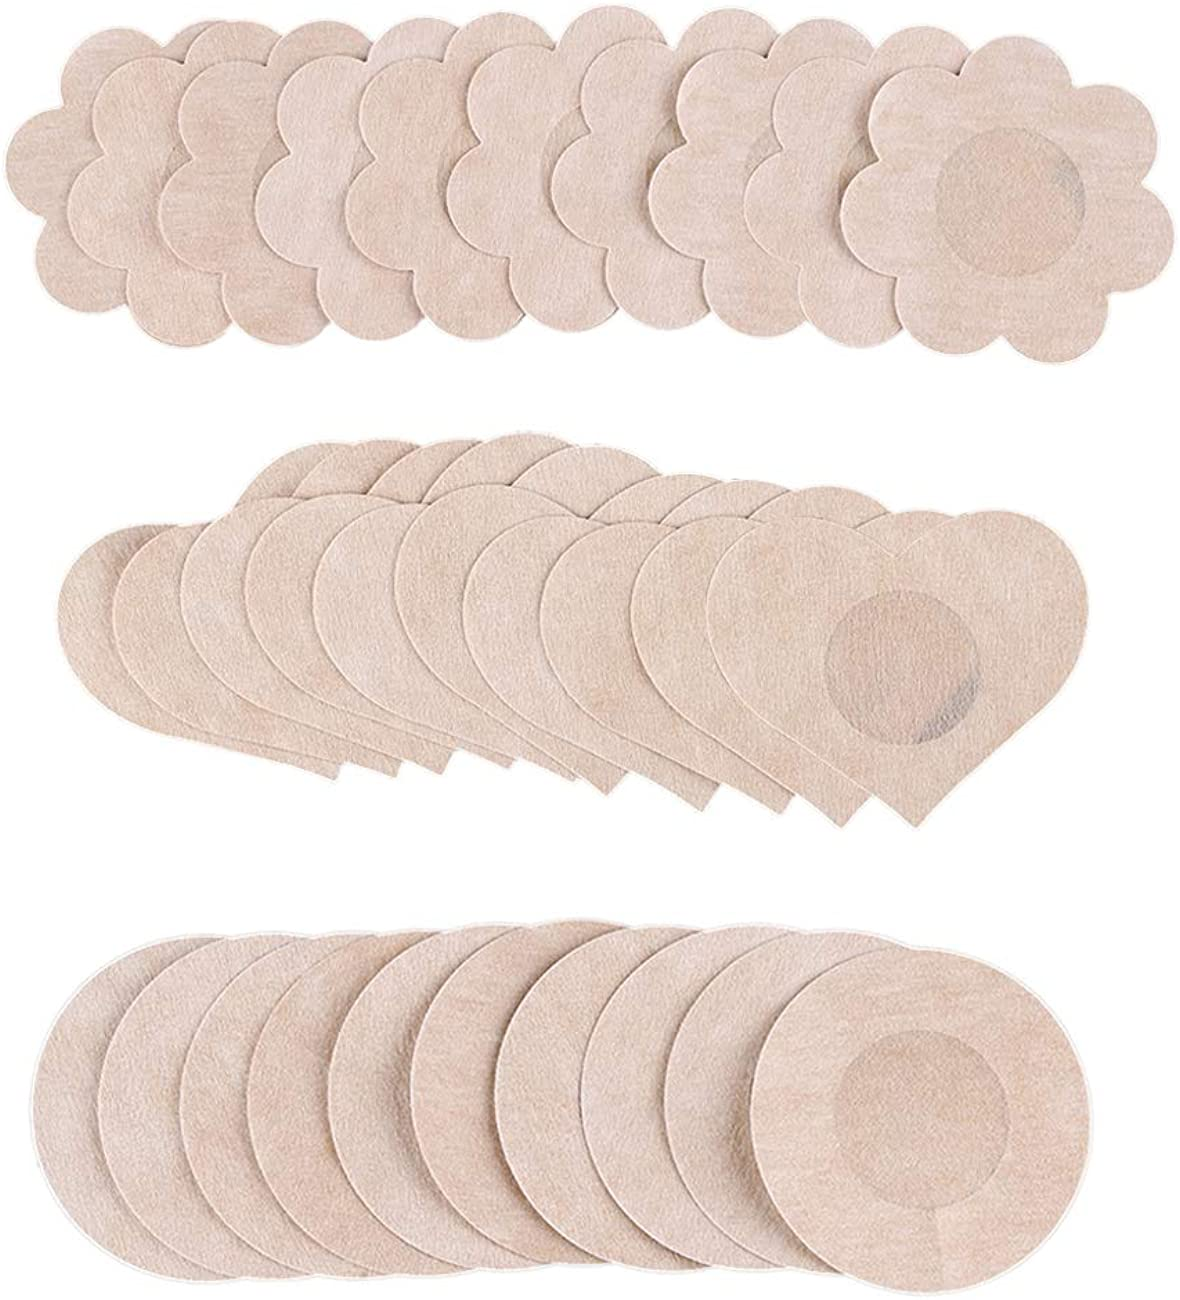 Women Non-Woven Breast Stickers Self-Adhesive Petals Pasties Invisible Nippleless Cover Zhhlaixing 15 Pairs Disposable Nipple Covers